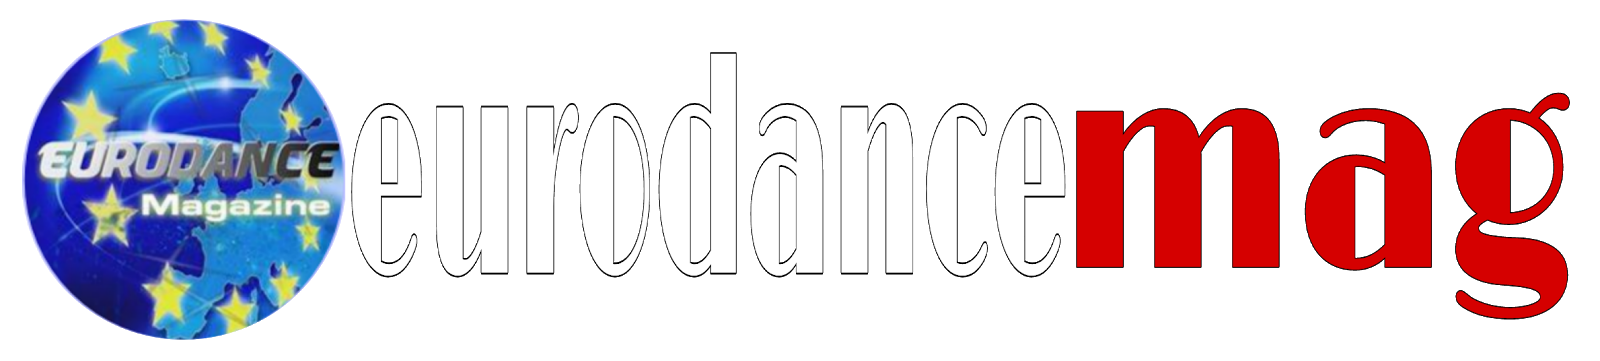 Welcome to Eurodance Magazine